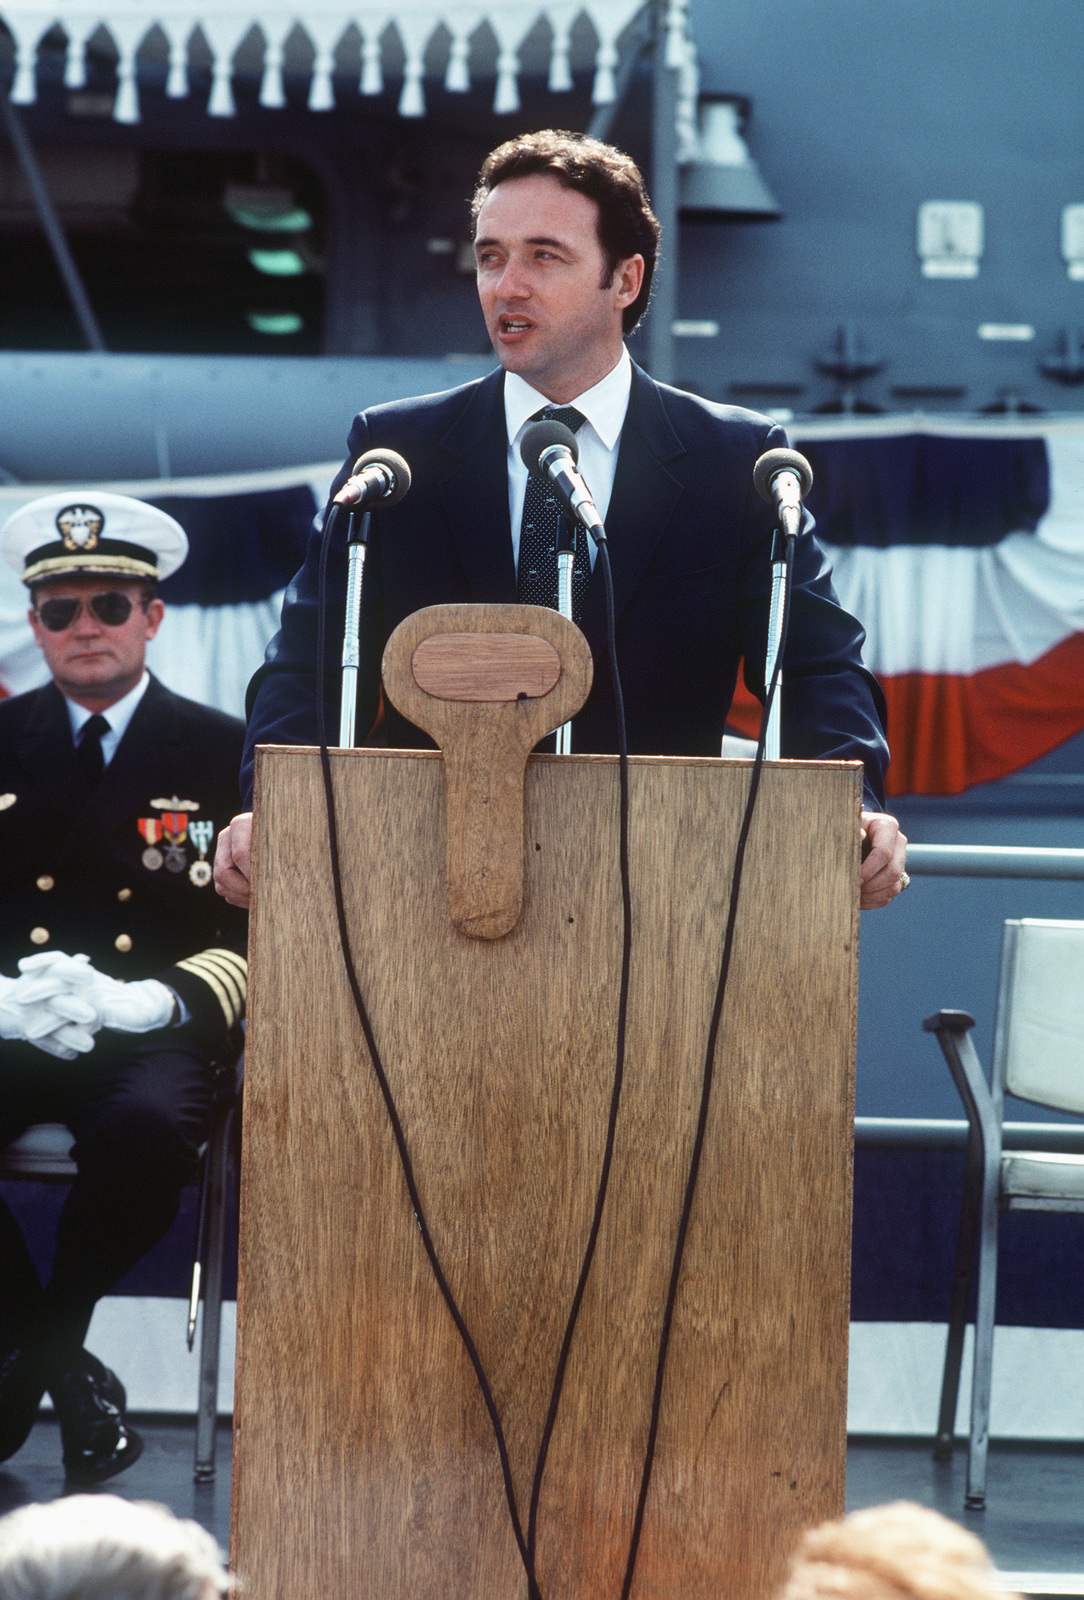 Congressman Dan Lungren (R-California) speaks during the commissioning ceremony for the Oliver Hazard Perry class guided missile frigate USS JOHN A. MOORE (FFG 19). Seated behind him is Captain David Kalb, Supervisor of Shipbuilding, Conversion and Repair